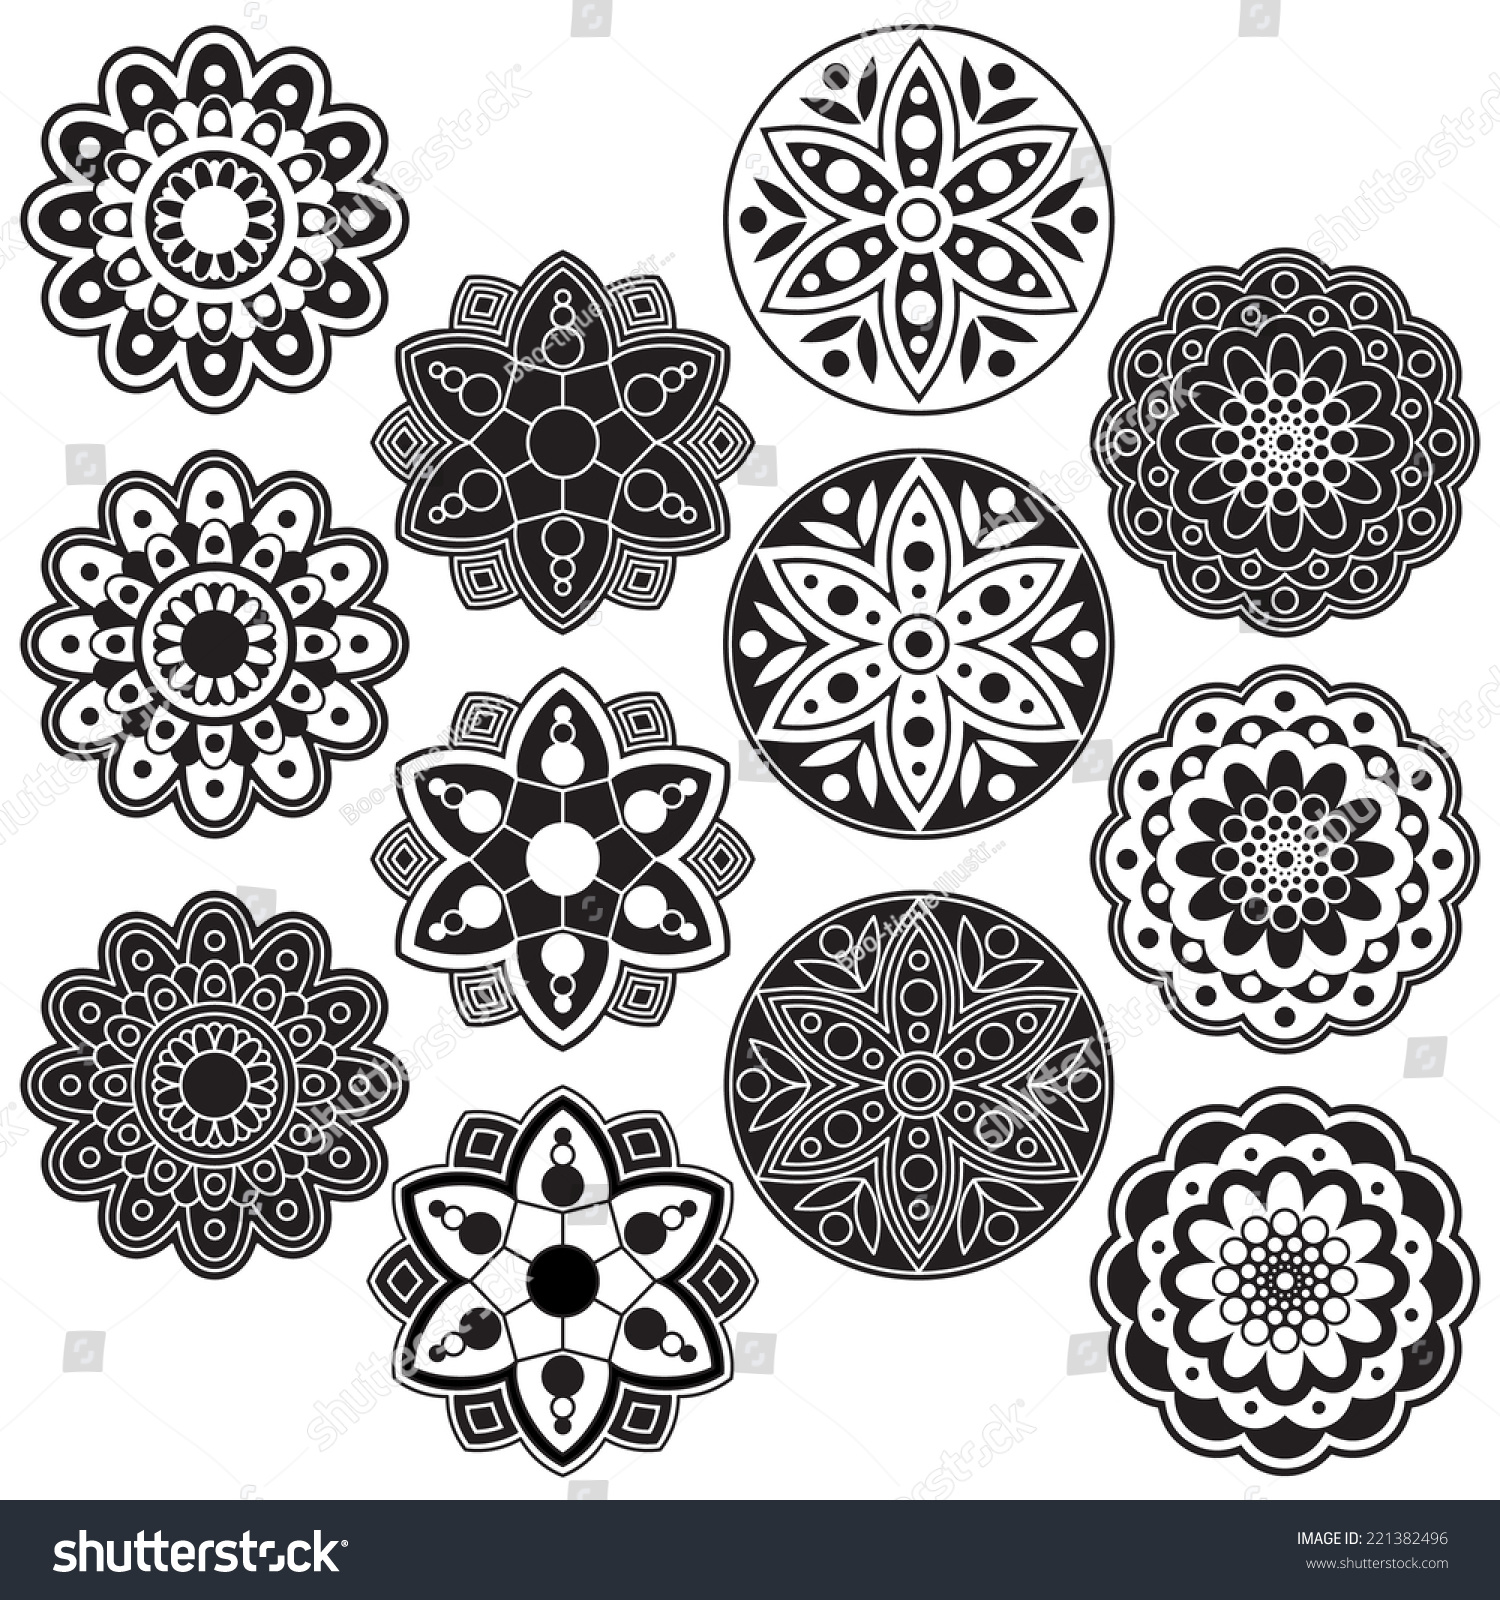 Black and white rangoli clip art set includes 12 black and white geometric flowers graphics